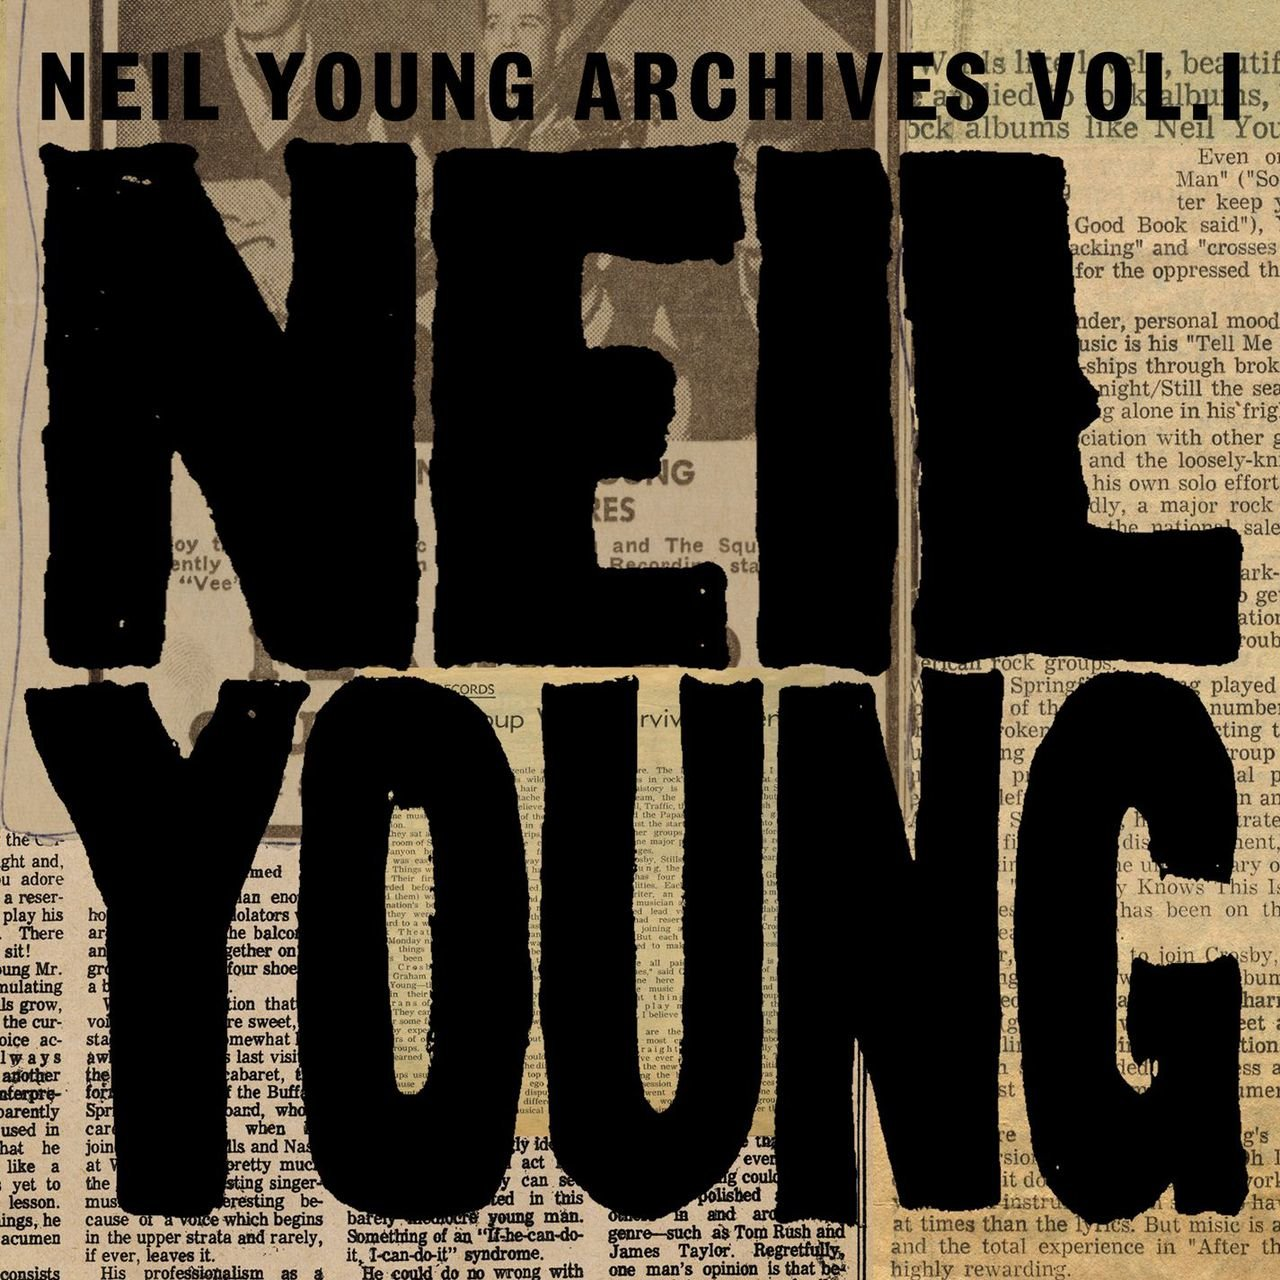 Archives Vol. 1 1963-1972